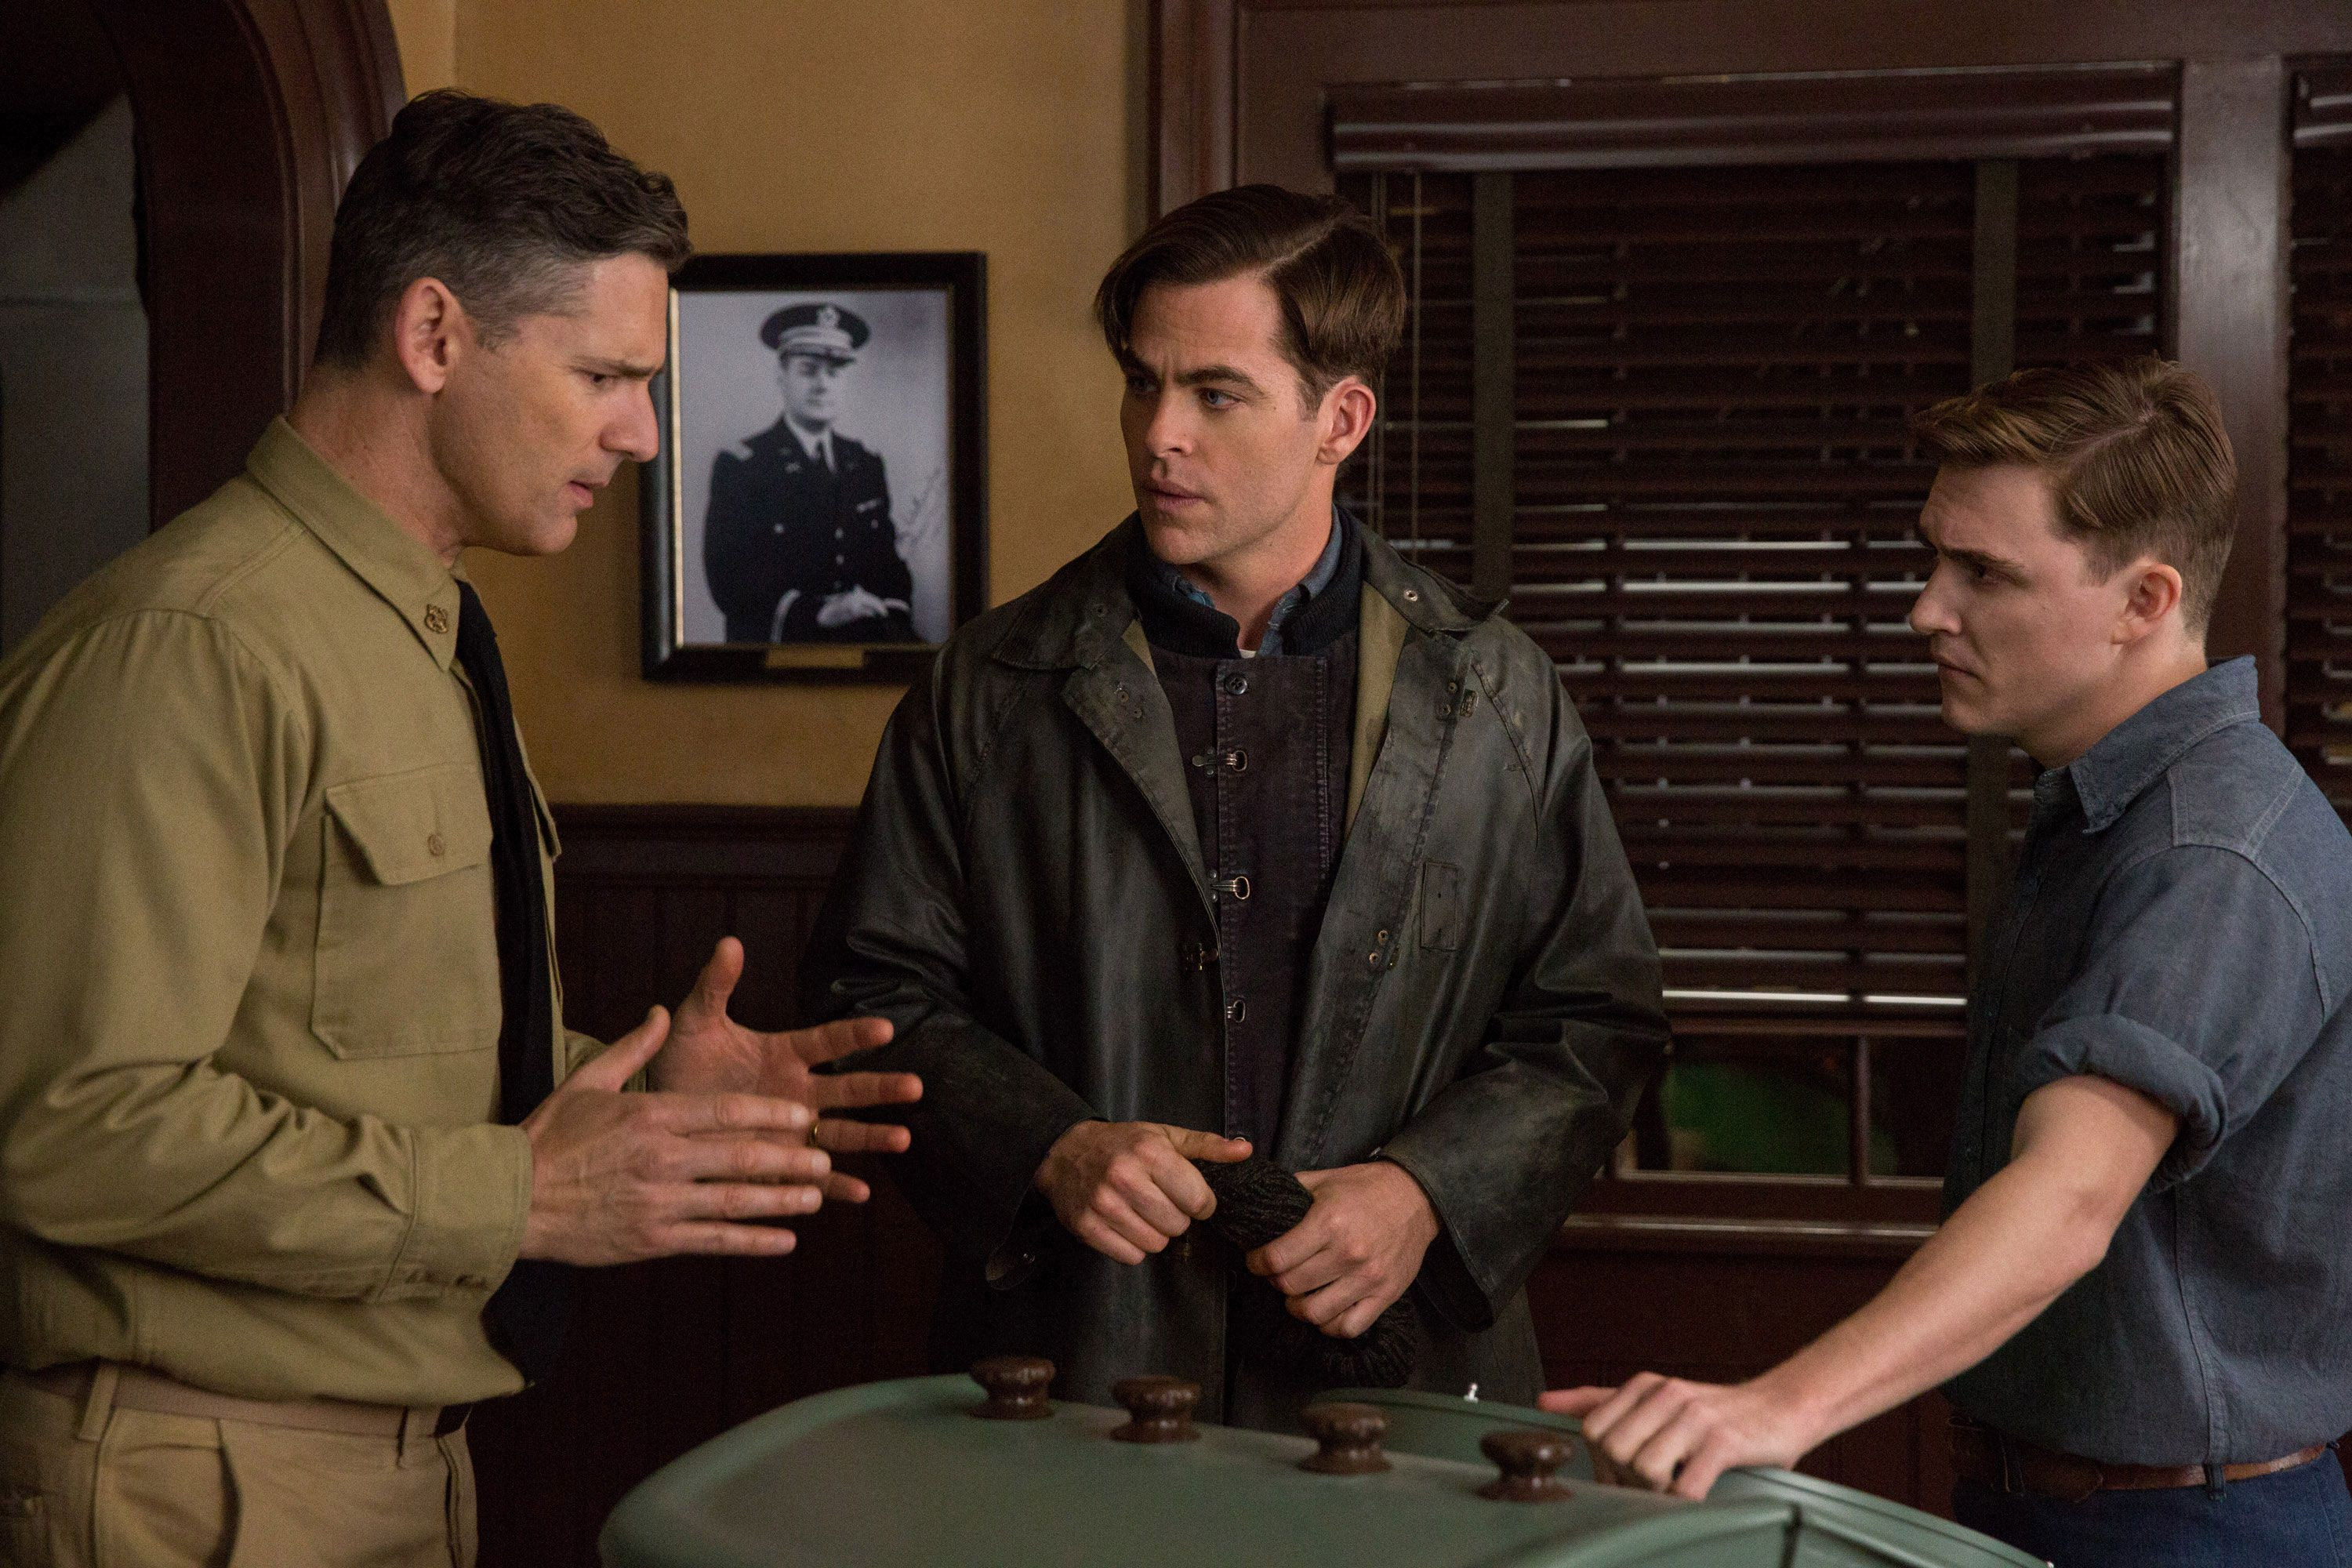 「The Finest Hours」の画像検索結果